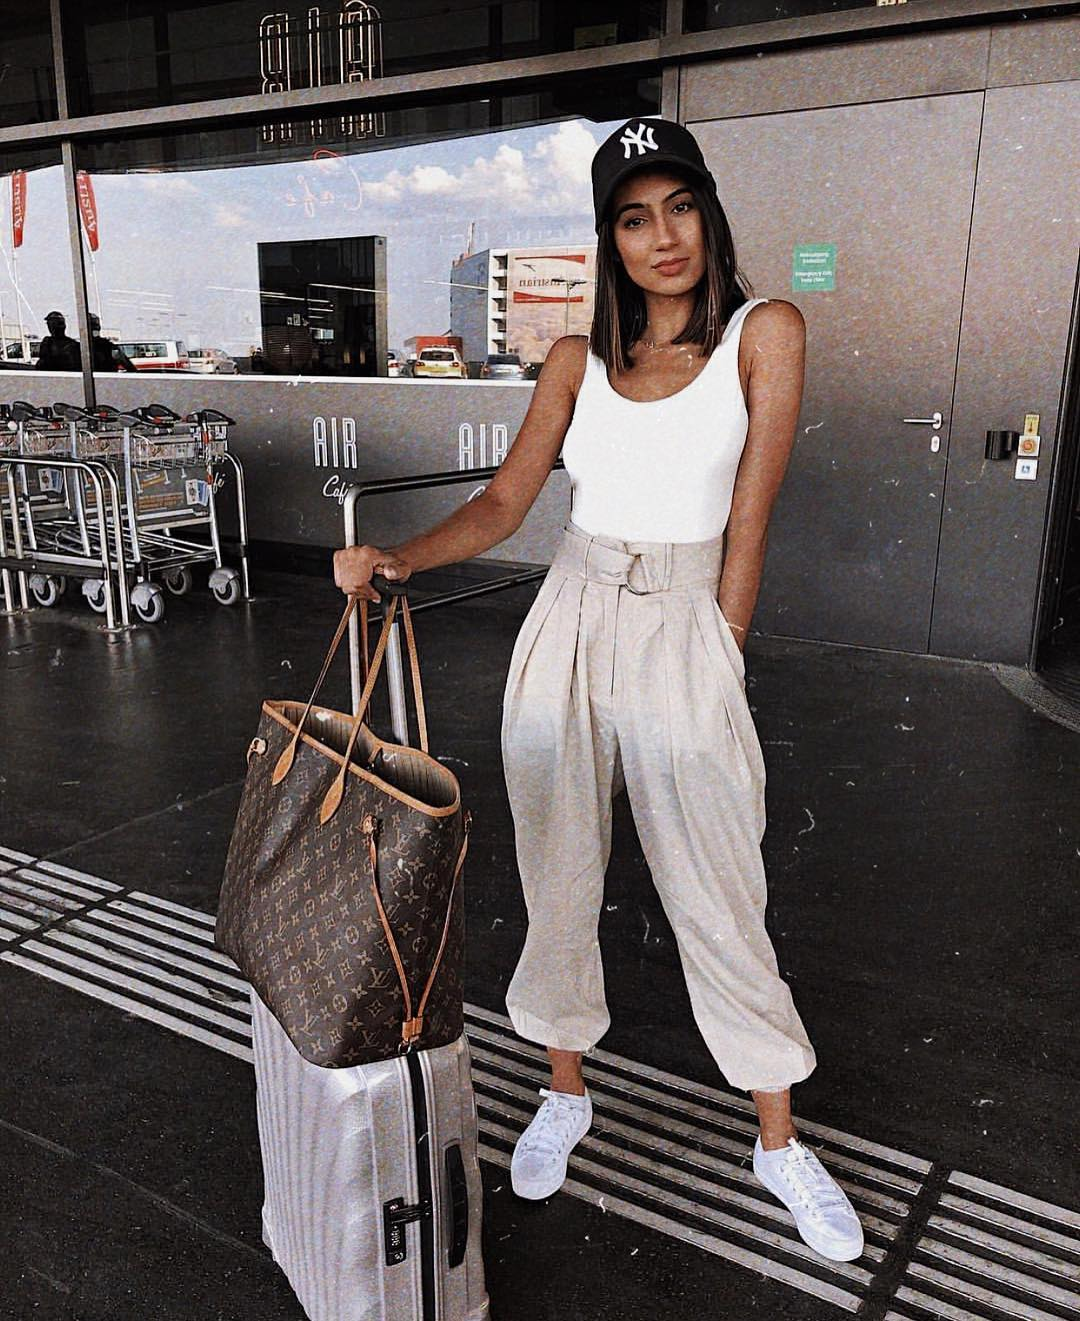 Airport Outfit Idea: White Tank Top And Tailored Joggers In Light Grey With White Sneakers 2020